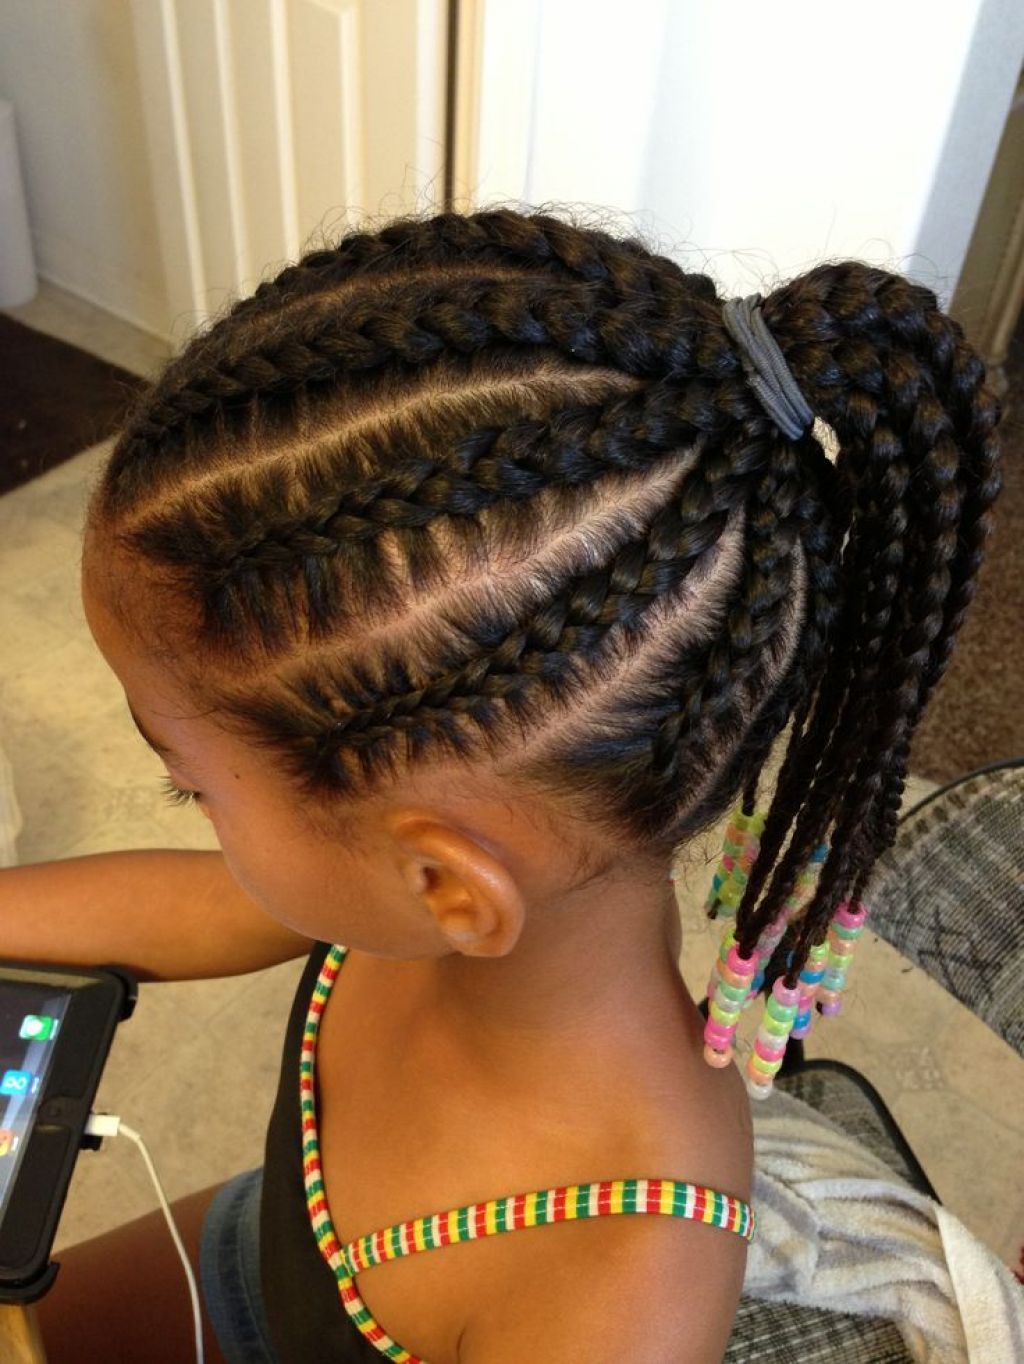 Groovy 1000 Images About Hairstyles On Pinterest Cornrow Designs Short Hairstyles Gunalazisus